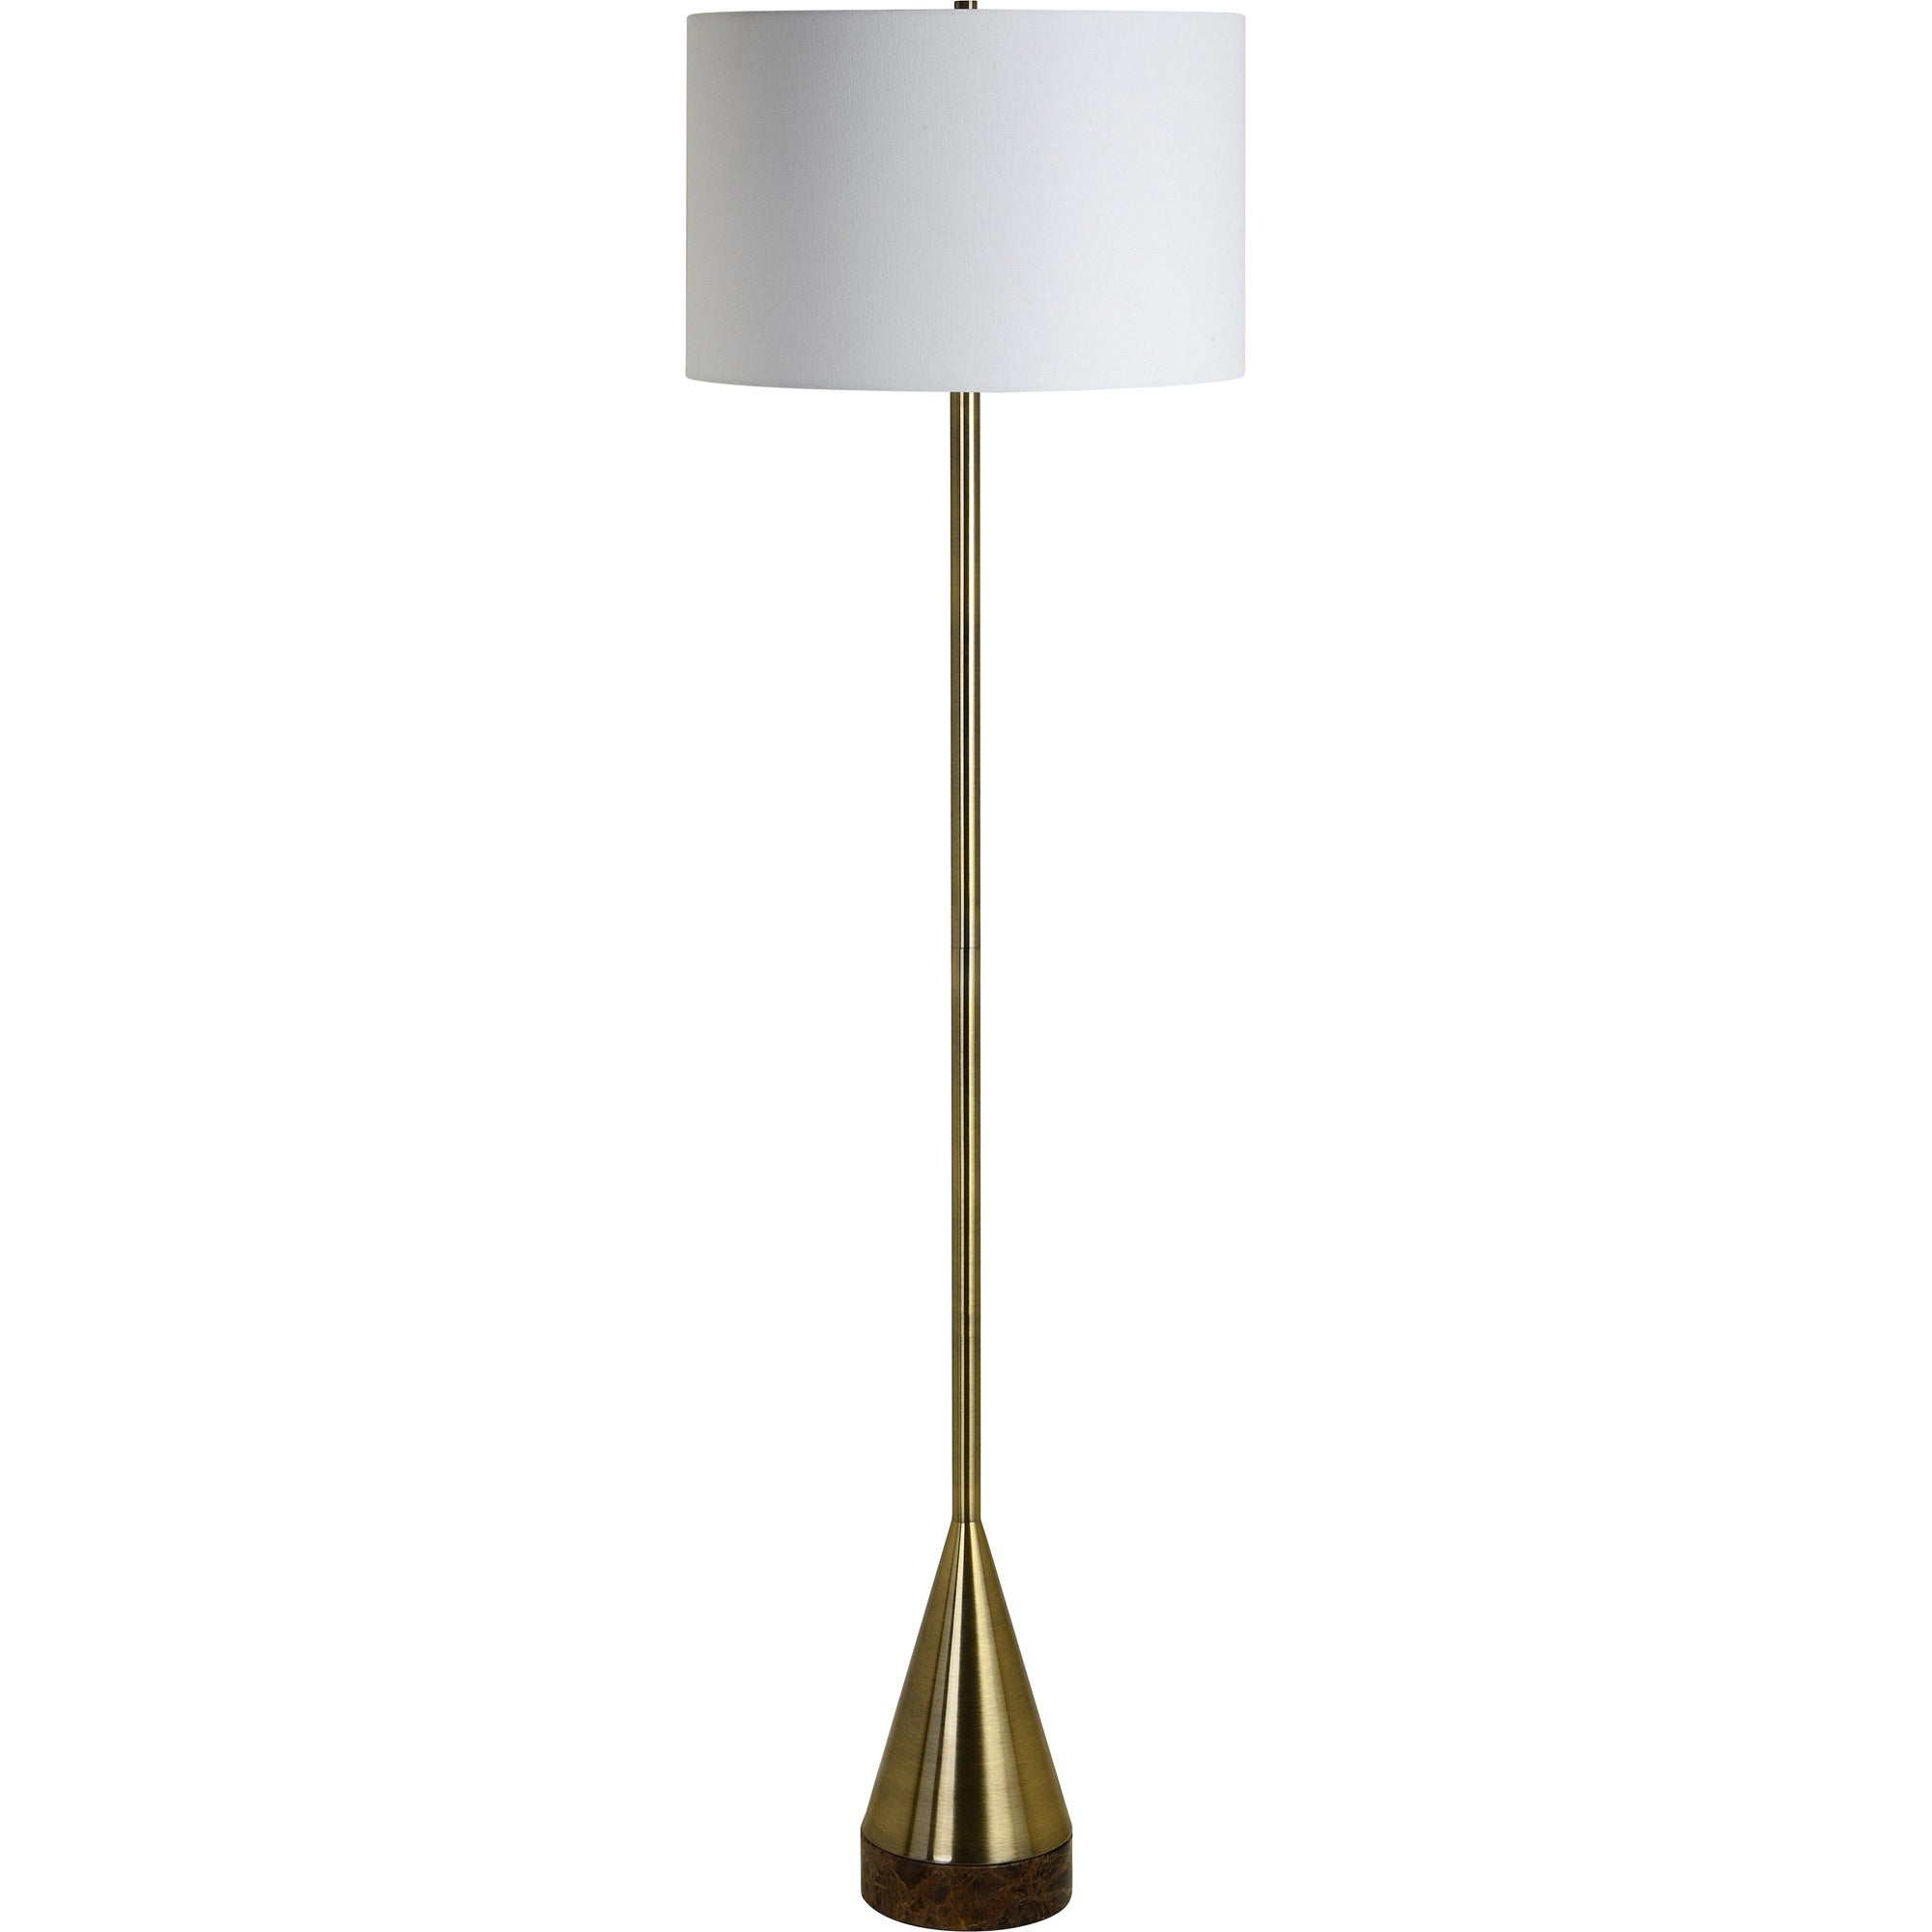 Lacy Brass & Marble Floor Lamp - Rug & Weave